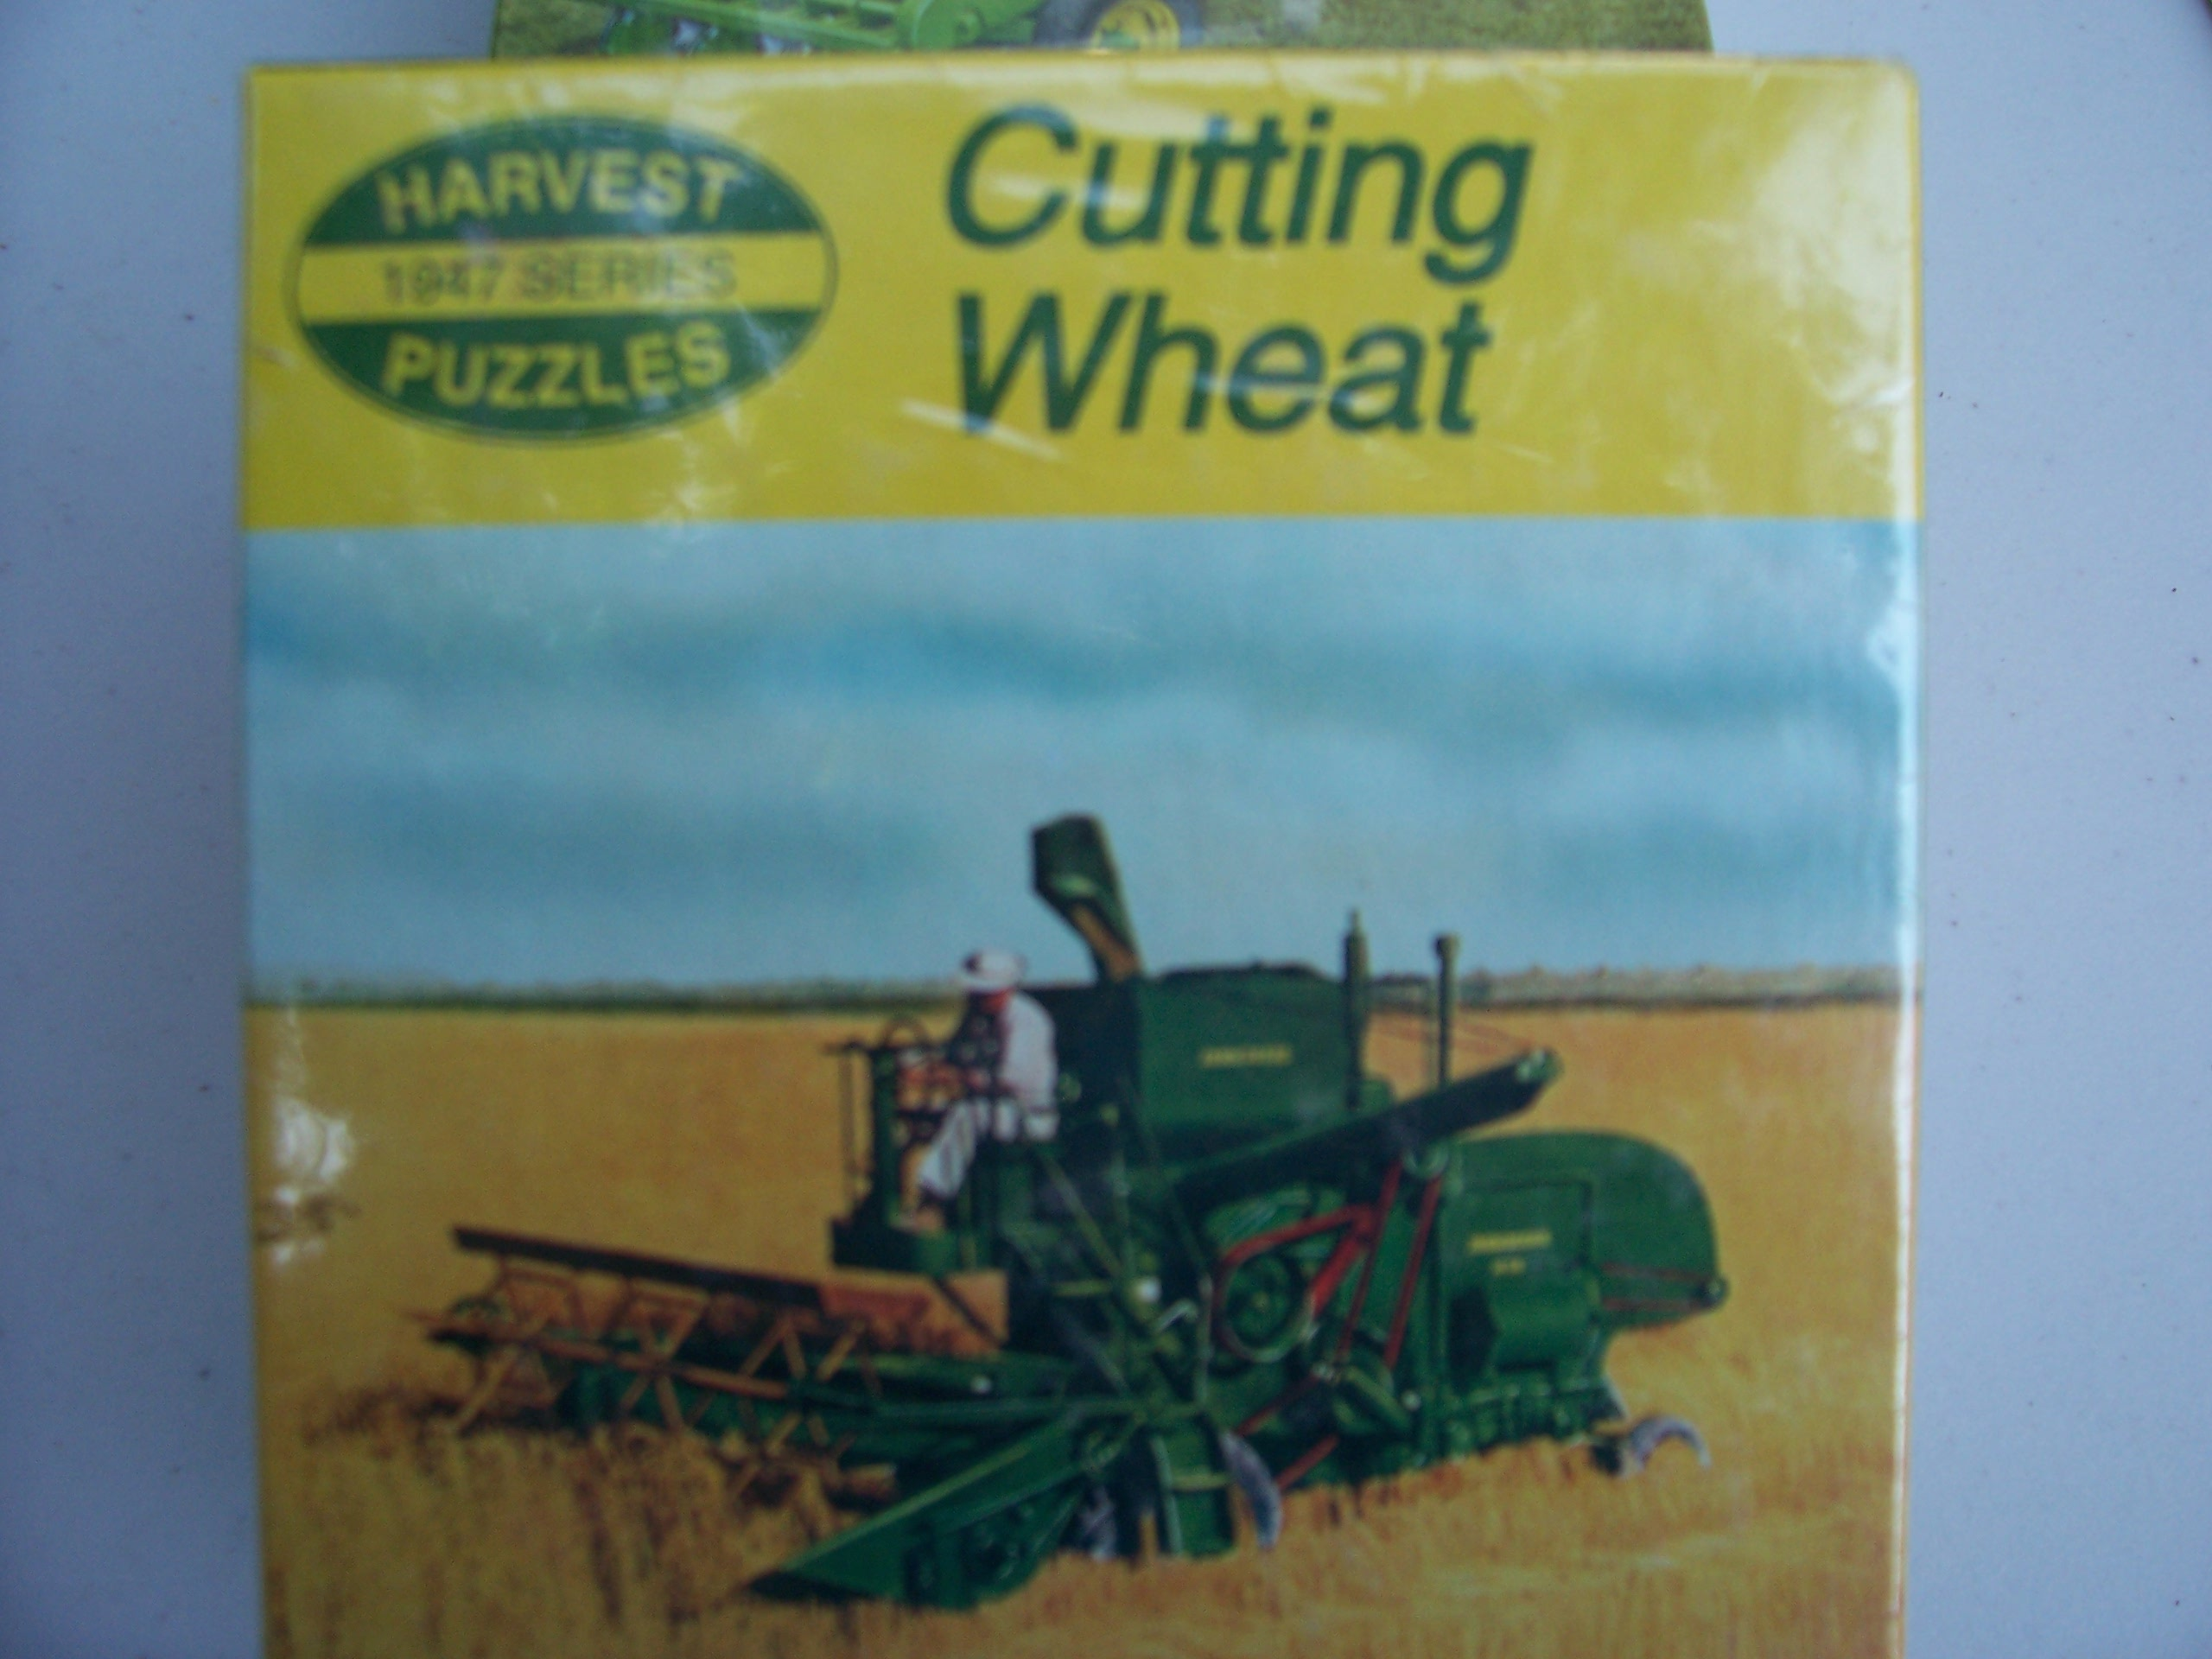 cutting wheat.JPG